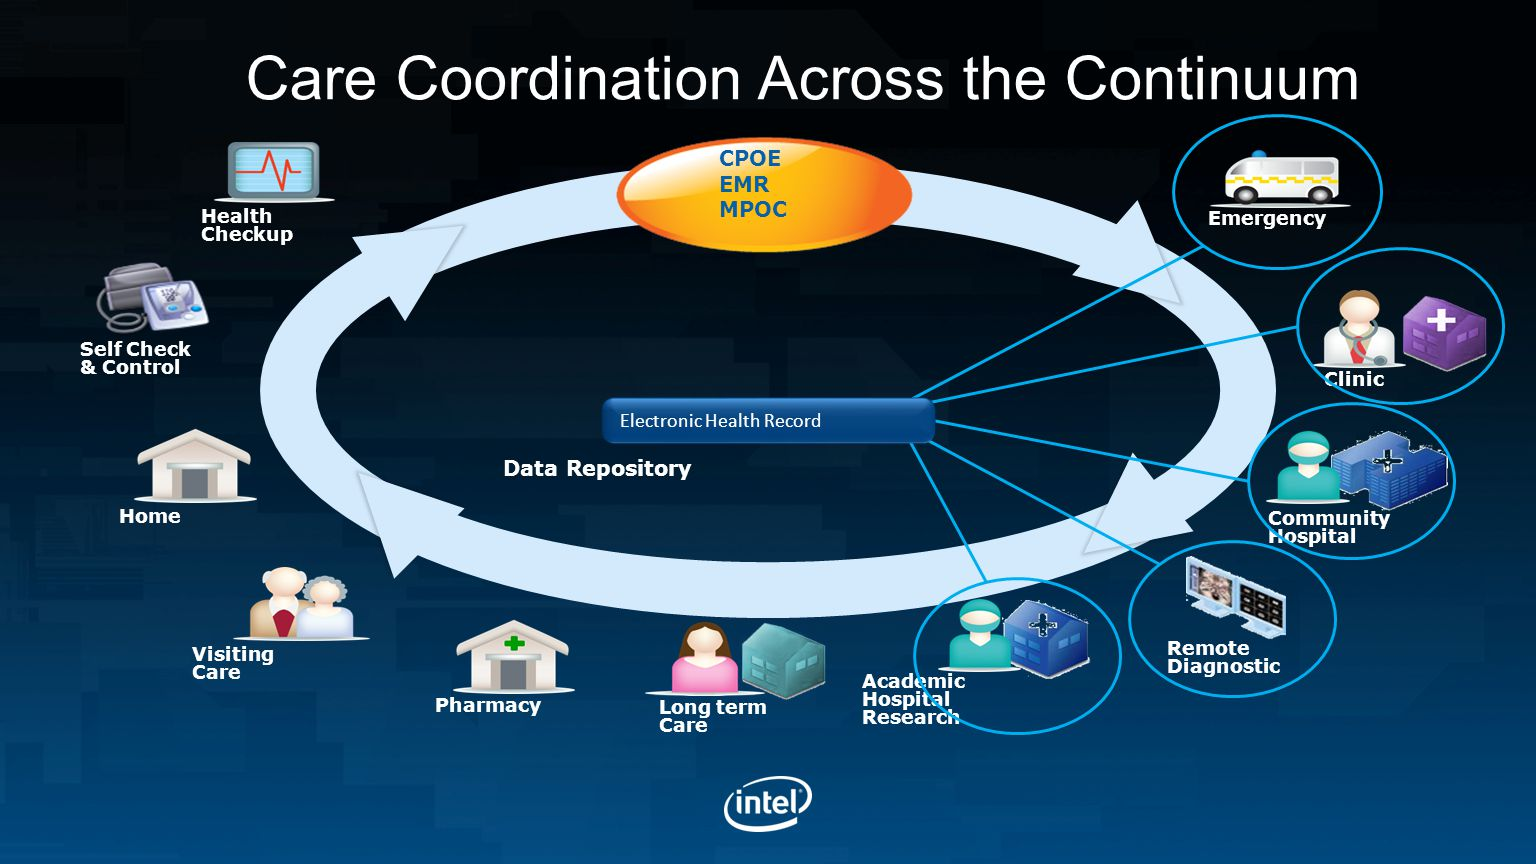 Care Coordination Across the Continuum